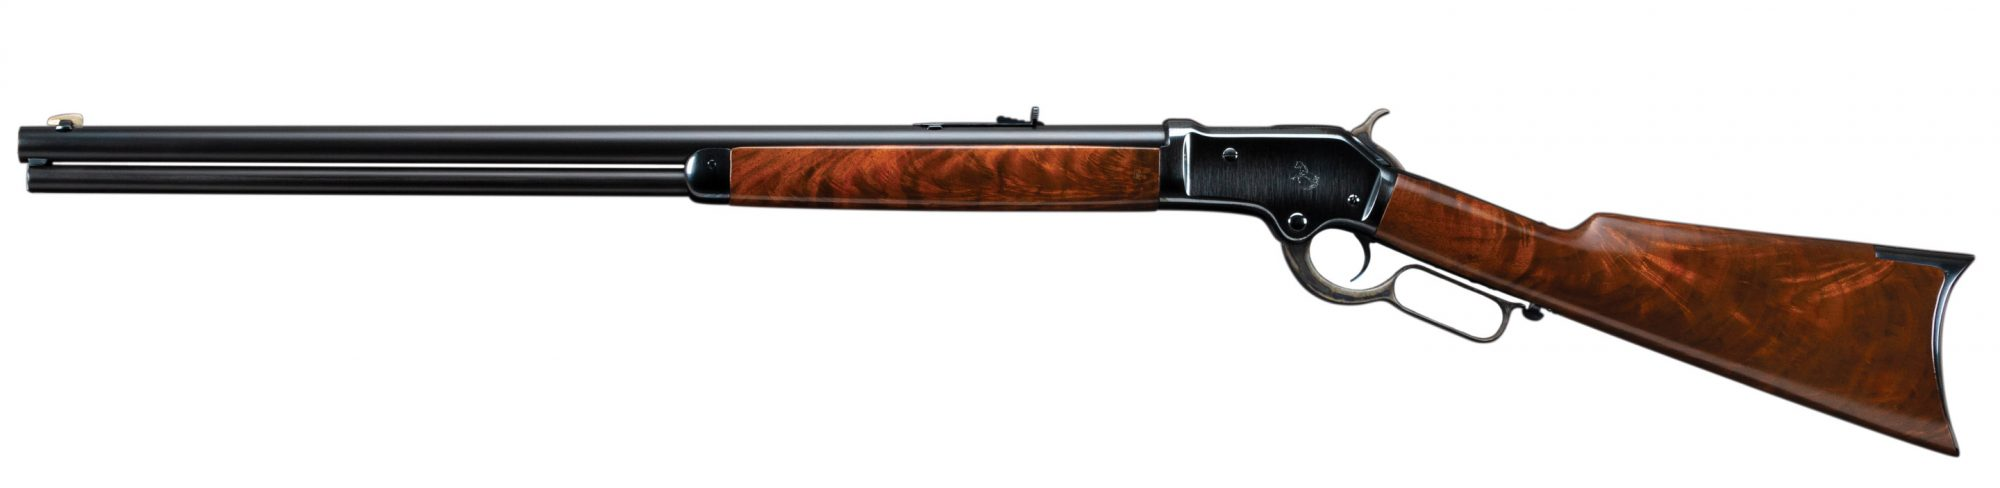 Photo of a restored Colt 1883 Burgess rifle, featuring all period-correct metal finishes by Turnbull Restoration of Bloomfield, NY